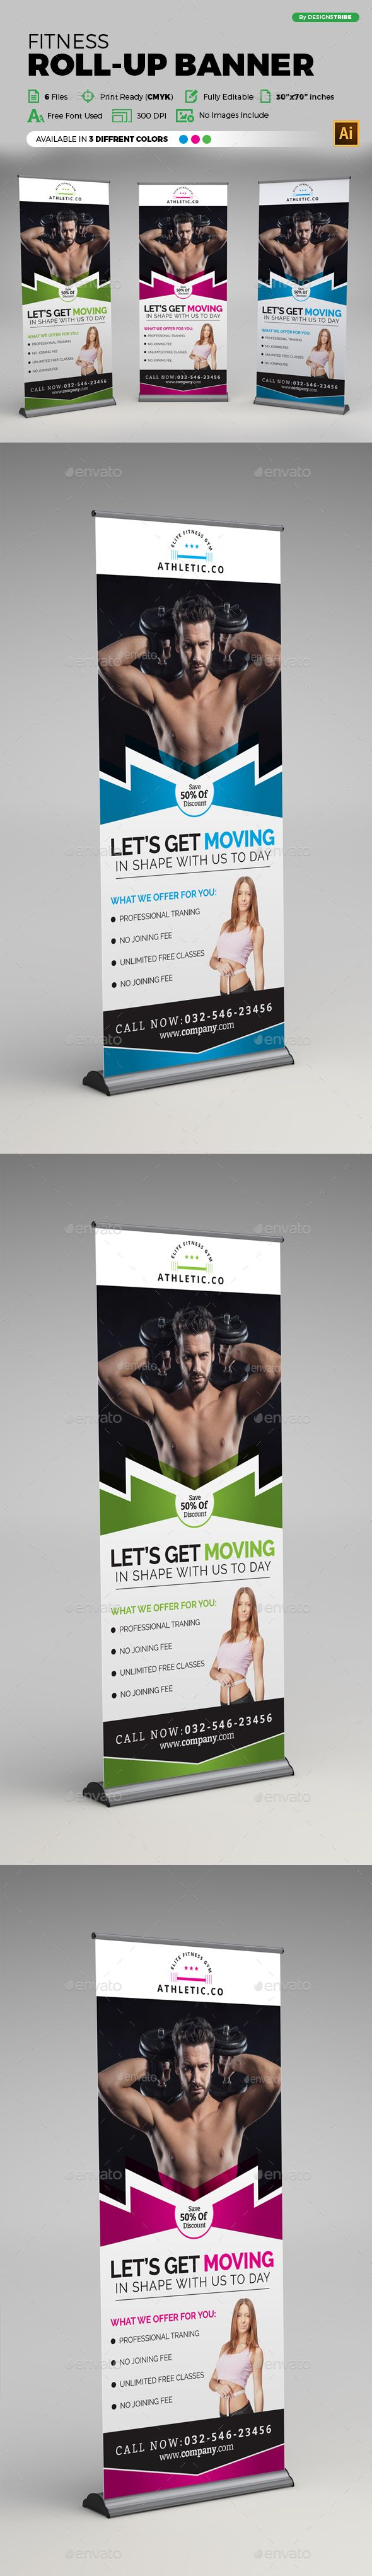 Corporate Business Roll-up Banner by arsalanhanif Corporate Business Roll-up Banner Template. This layout is suitable for any business. Very easy to use and customize. ...........